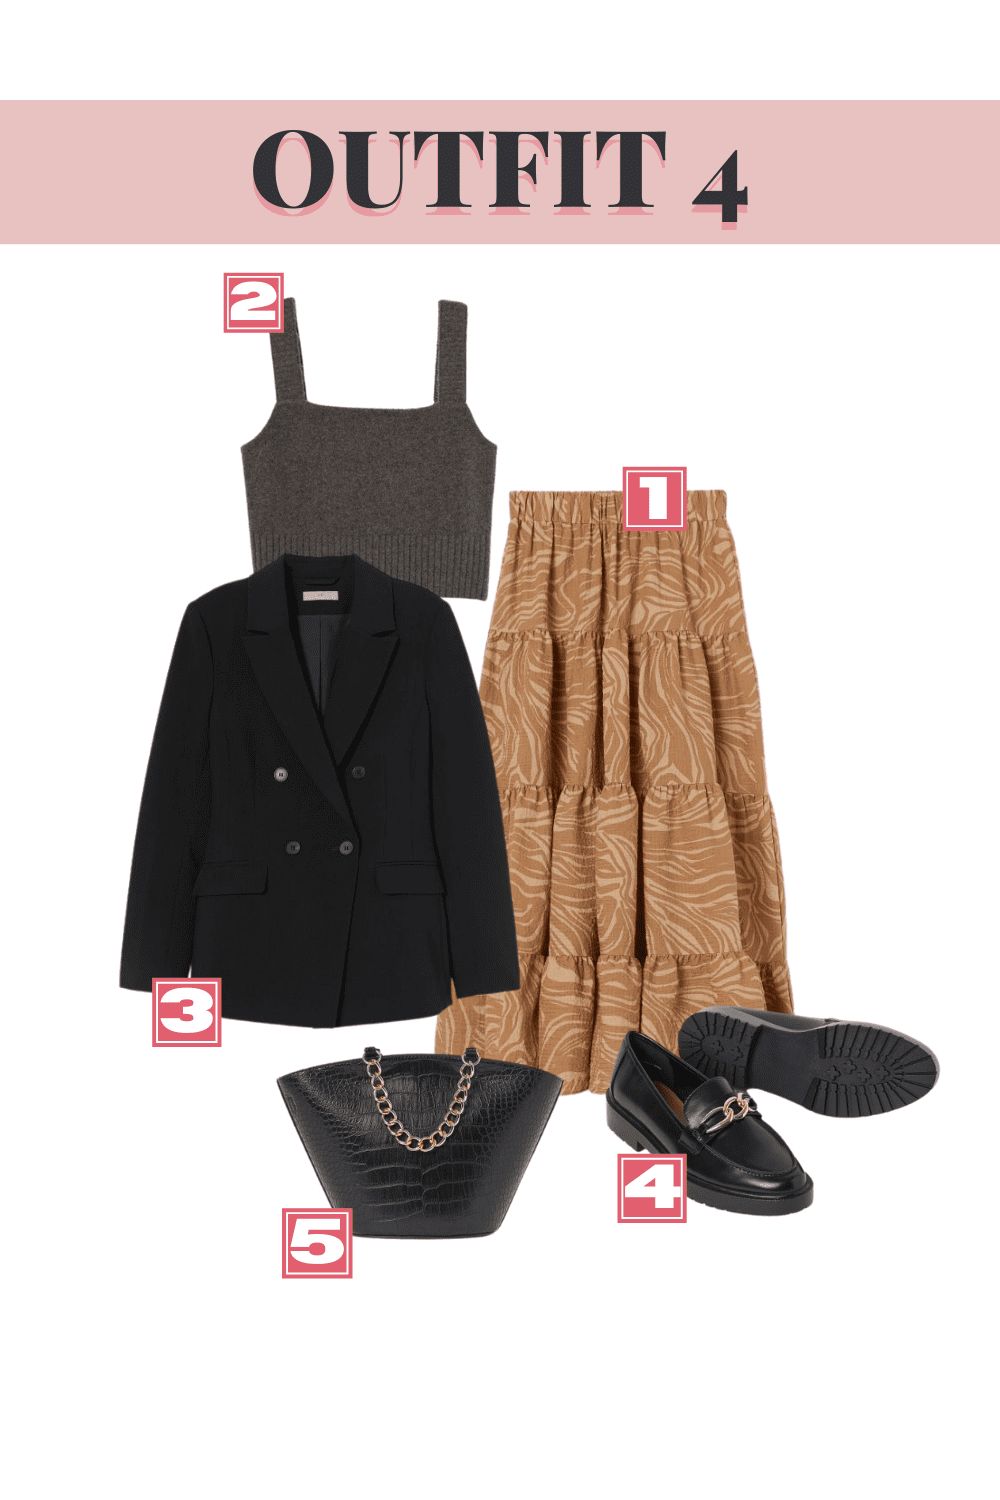 H&M Fall Top Picks - Outfit 4